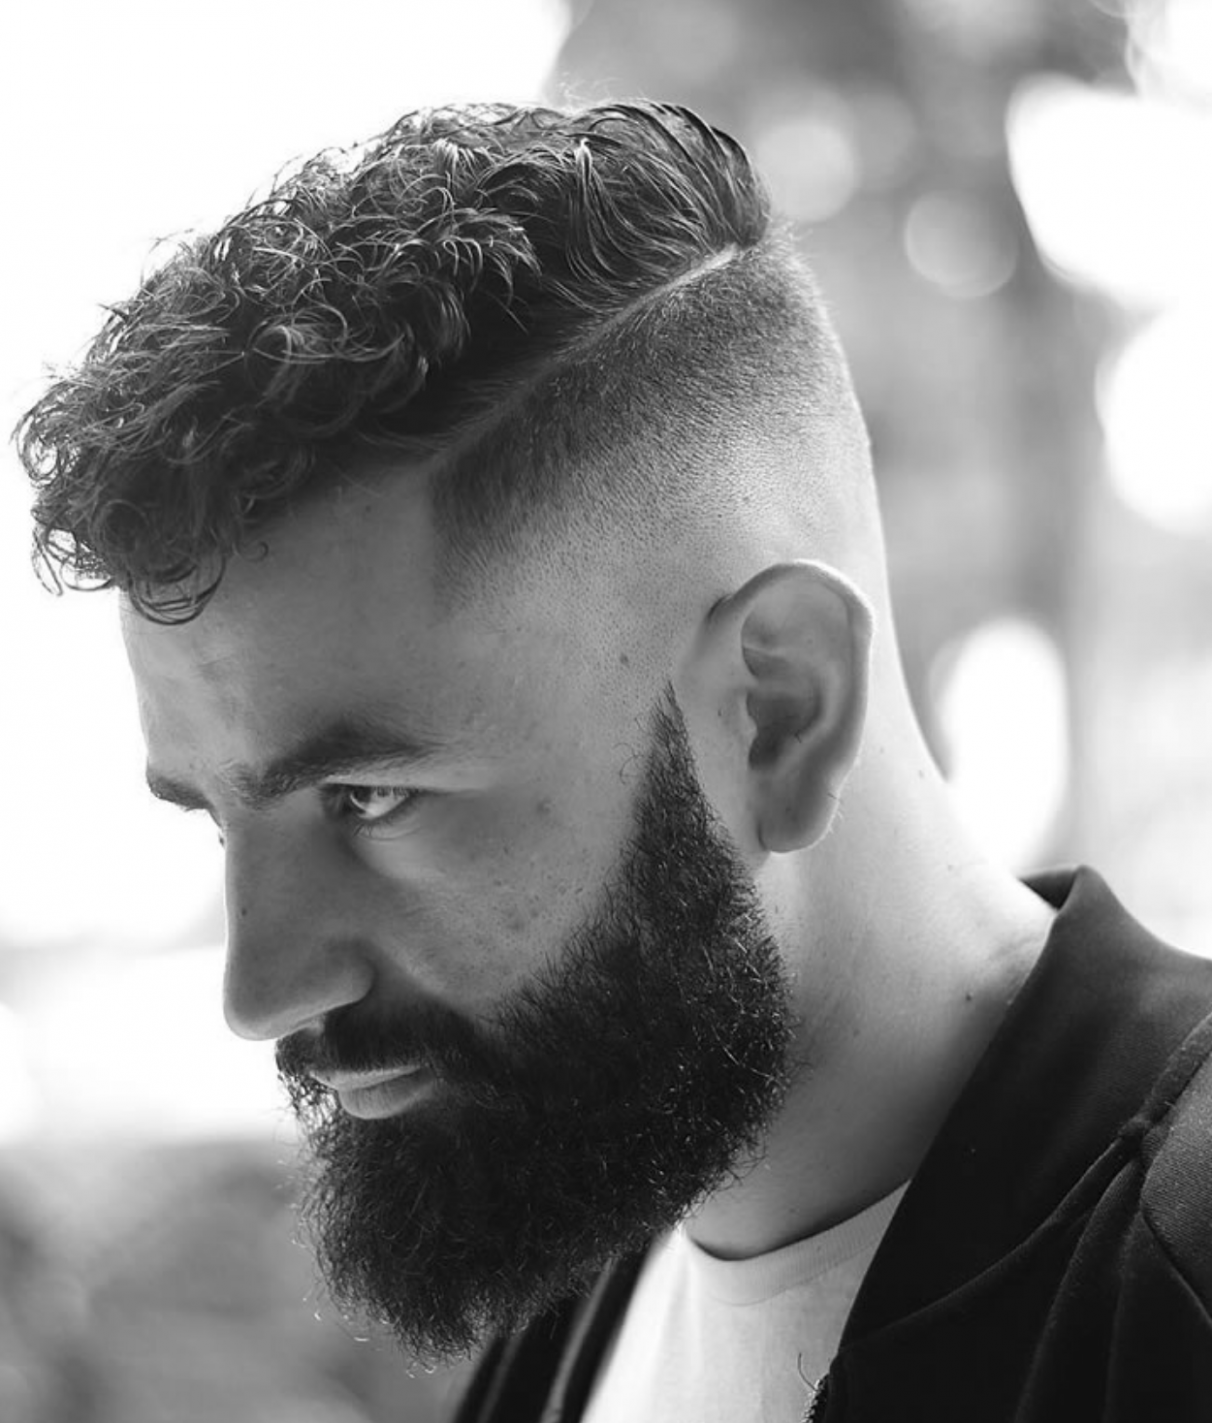 Modern curly hairstyle and haircuts for men that will trend in